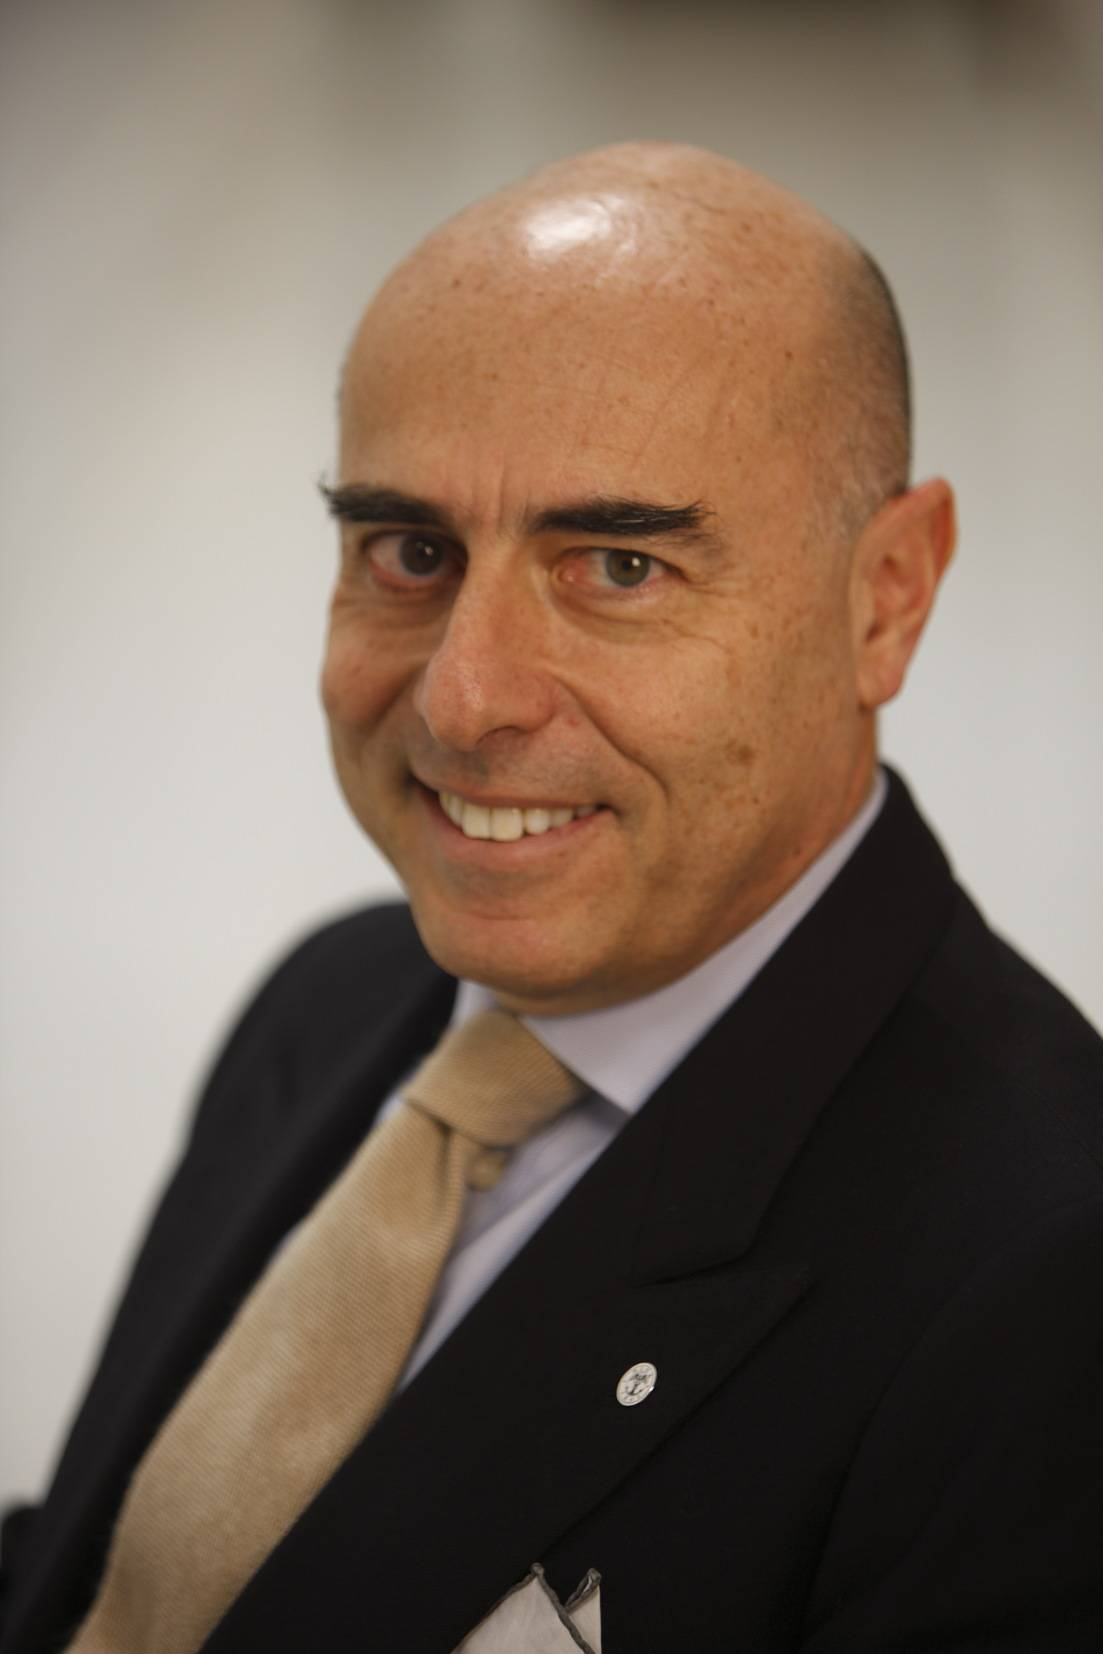 Ugo Salerno, CEO, RINA